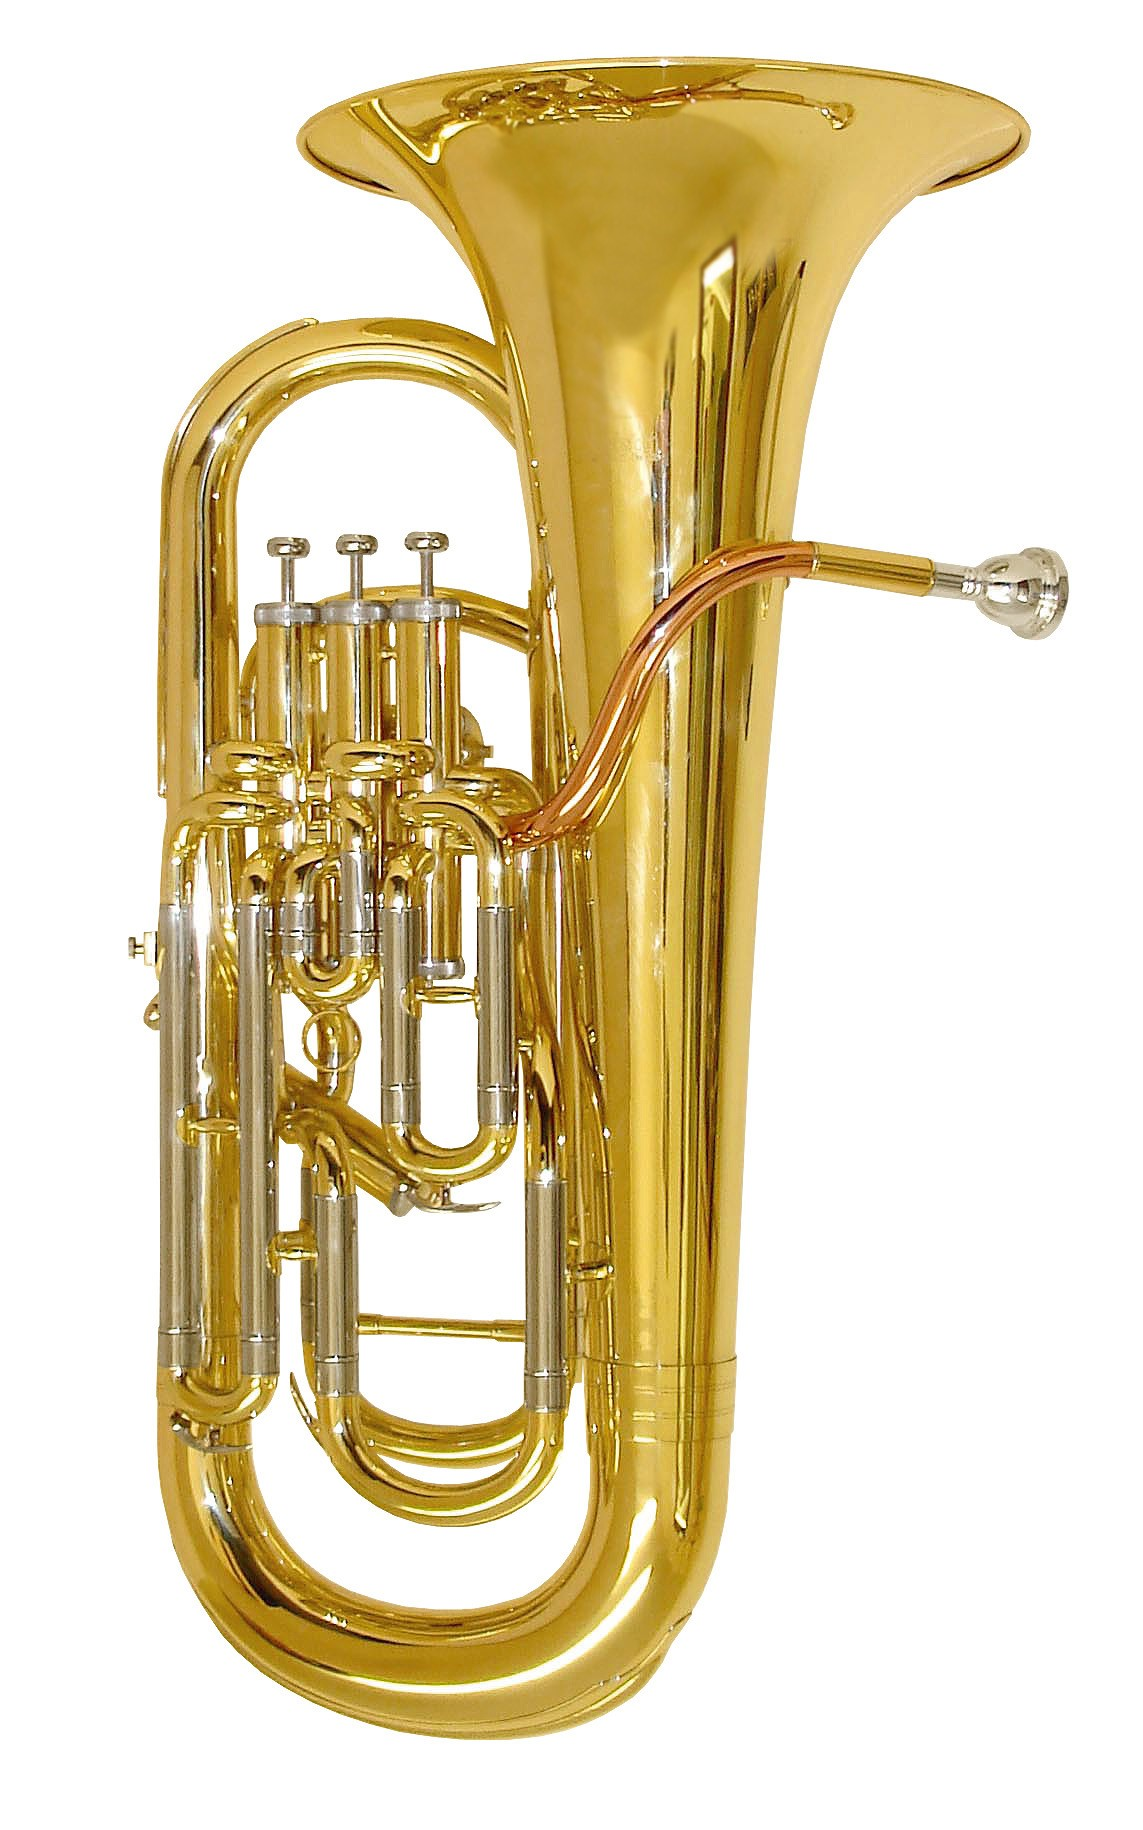 Rosetti Series 7 4-Valve (3+1) Compensated Bb Euphonium Outfit - Lacquer